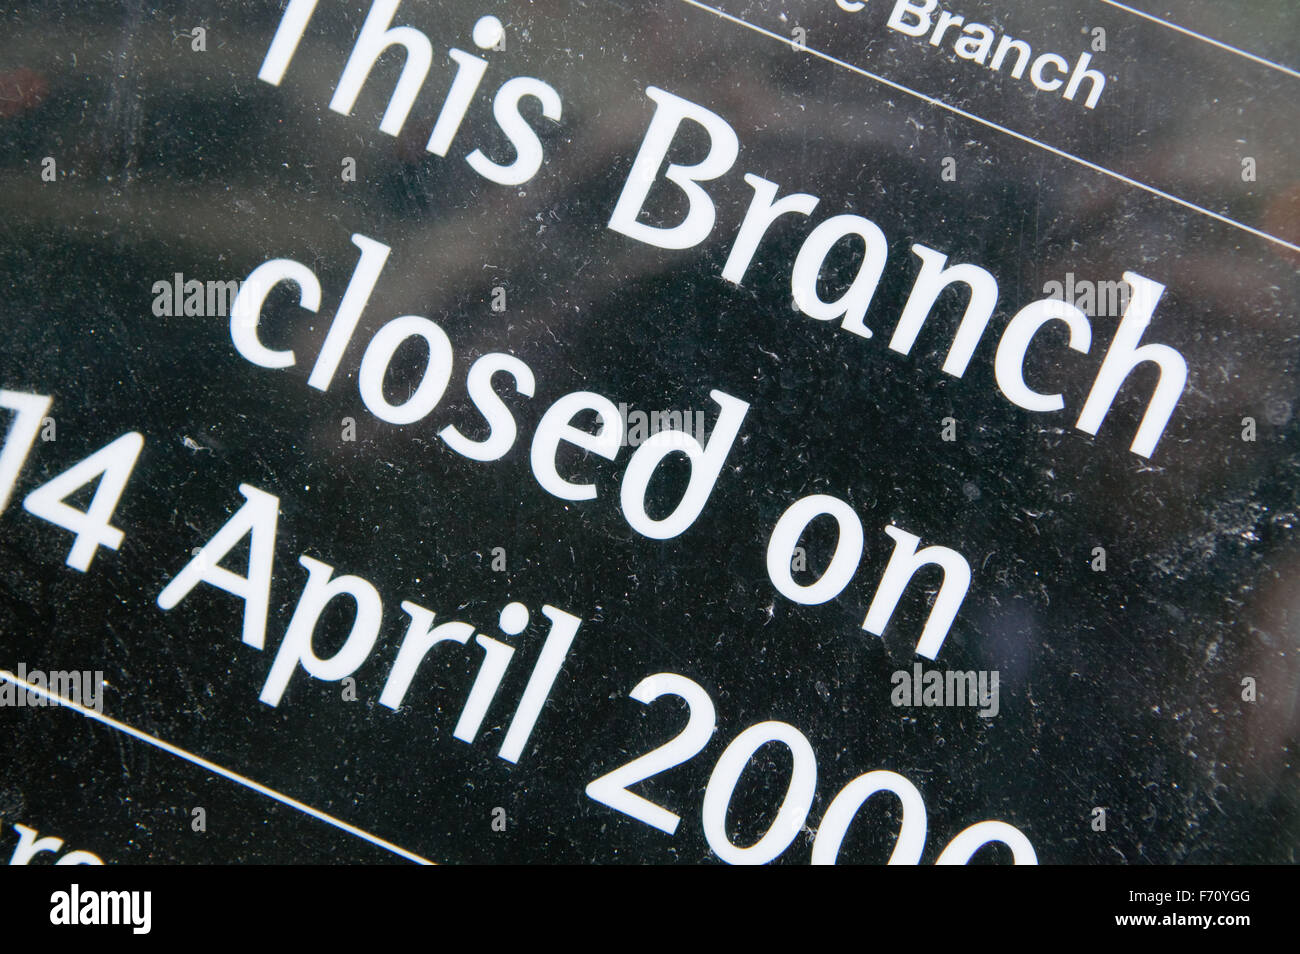 One of many high street banks closures - Stock Image